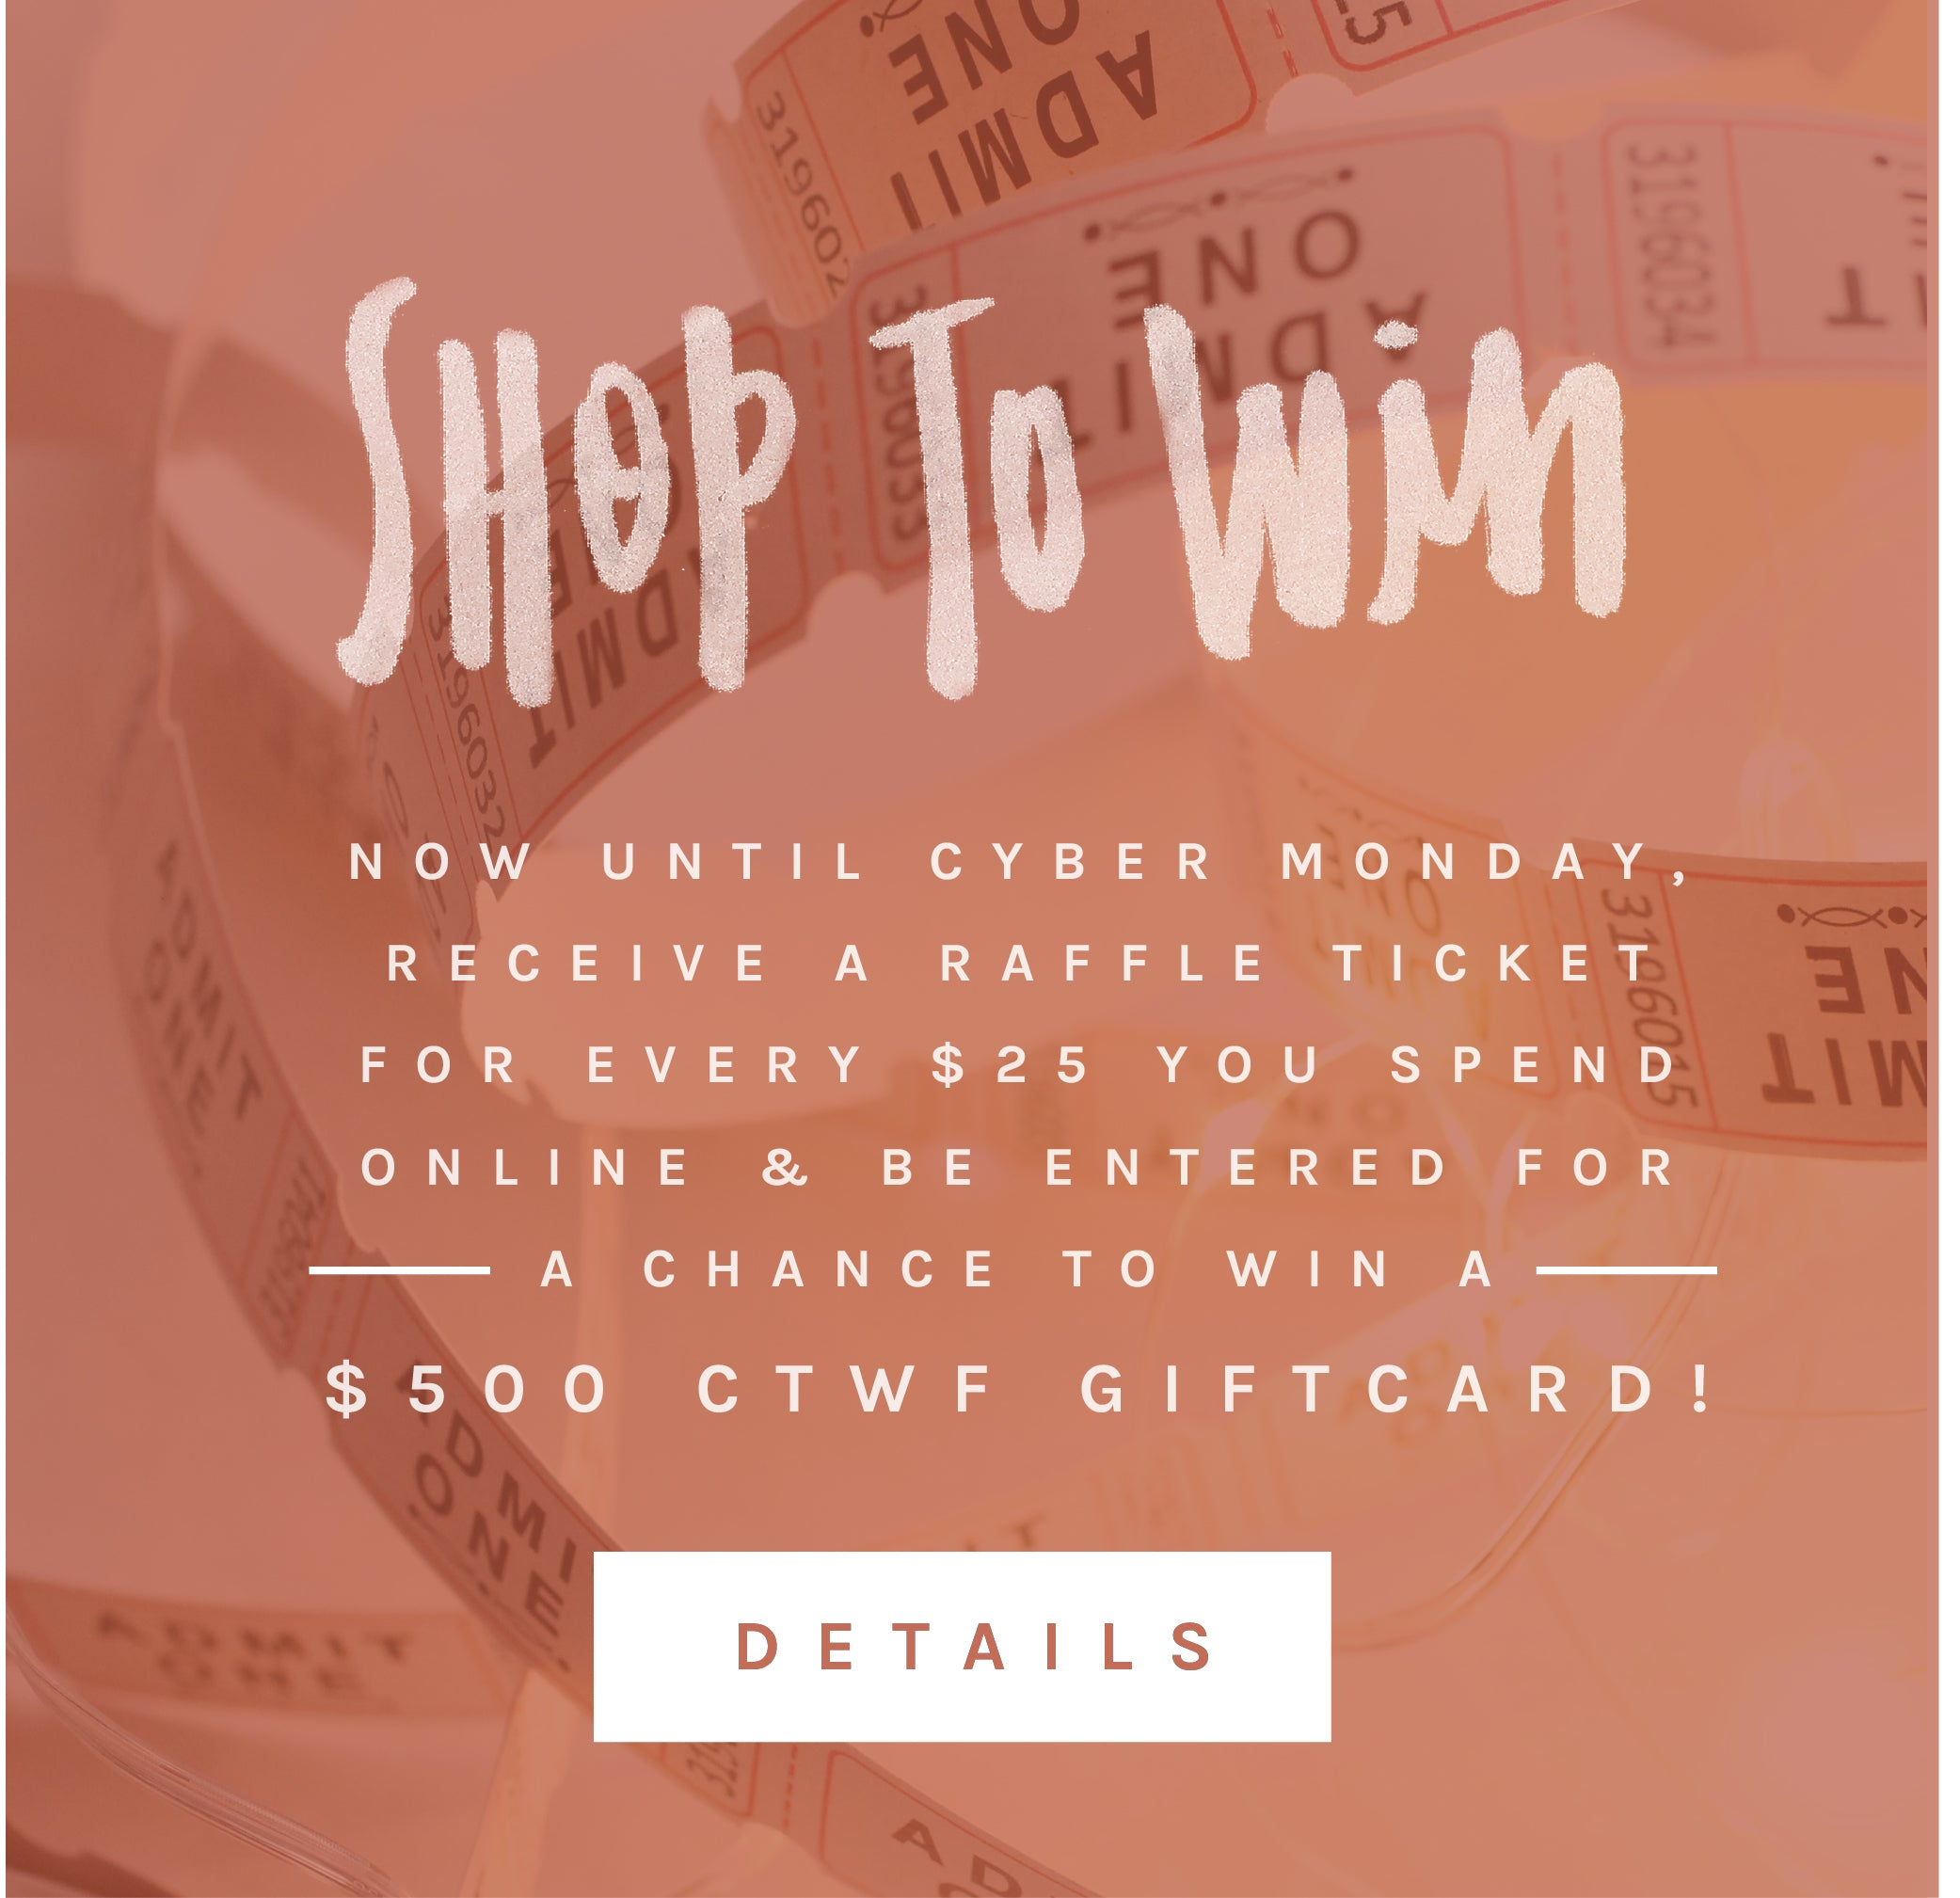 Shop to win!